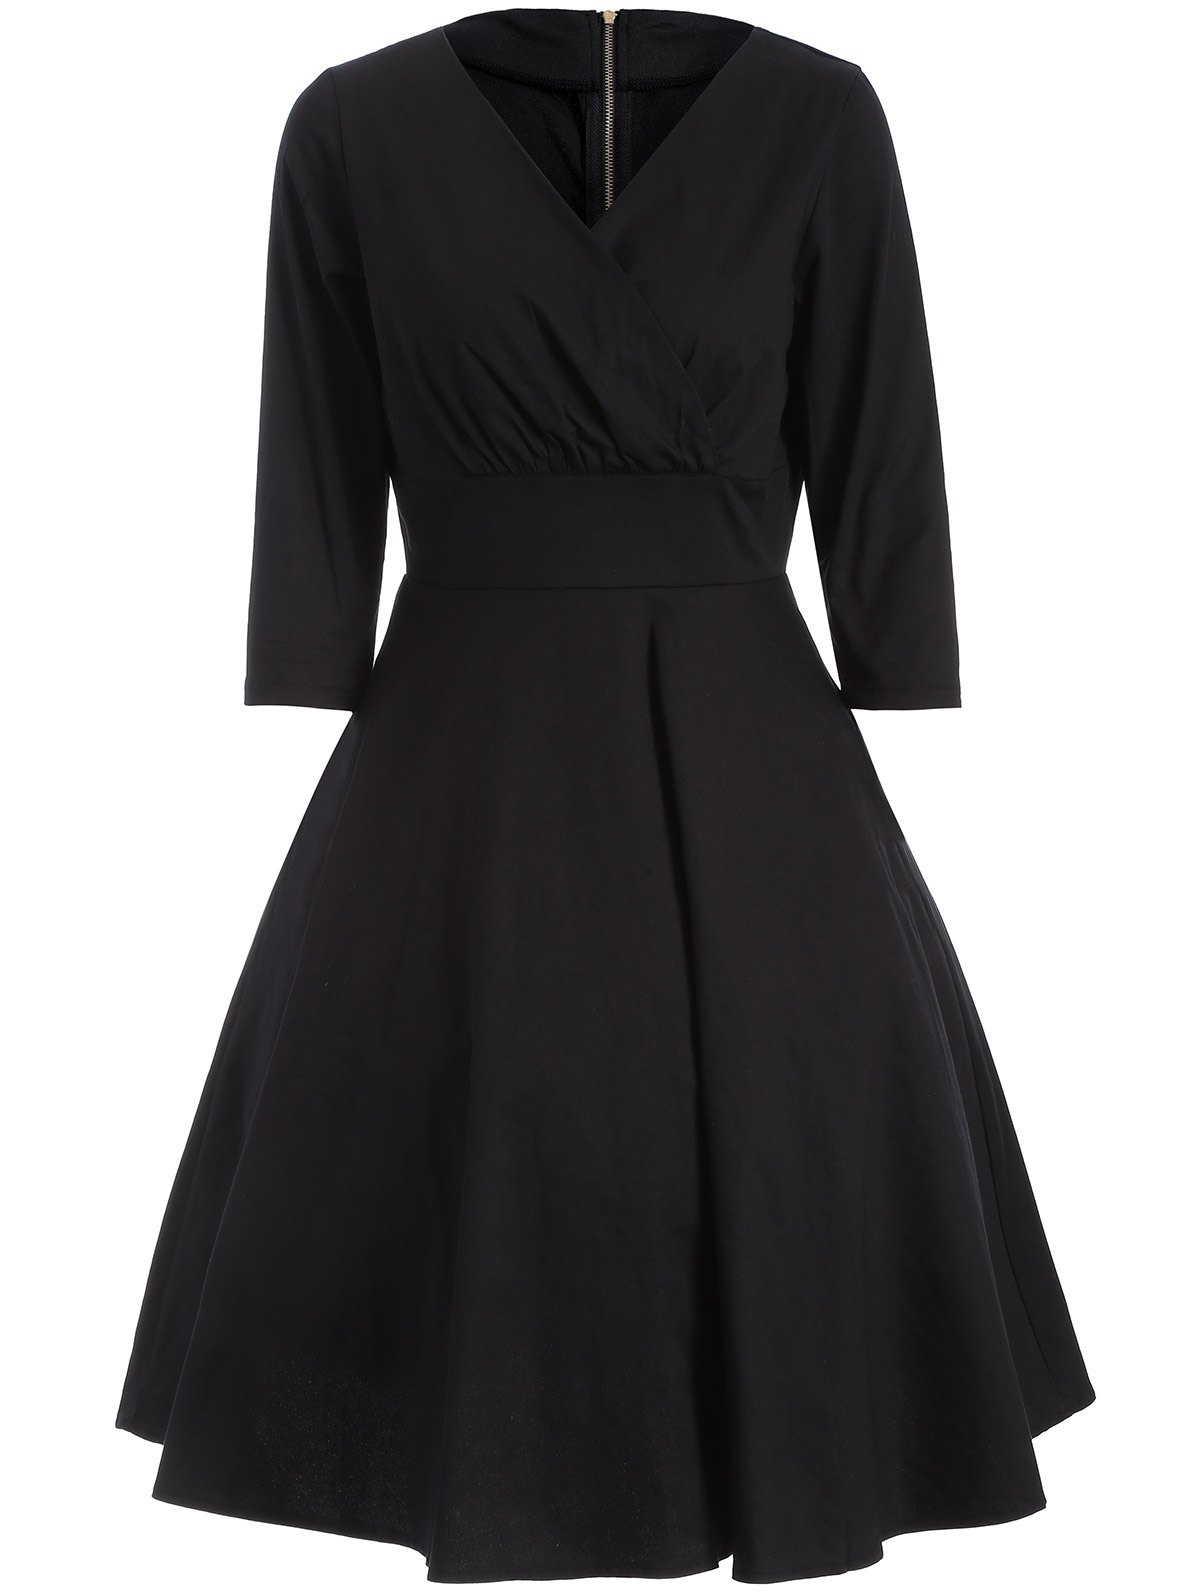 Ruched Surplice Flare Dress - BLACK 2XL